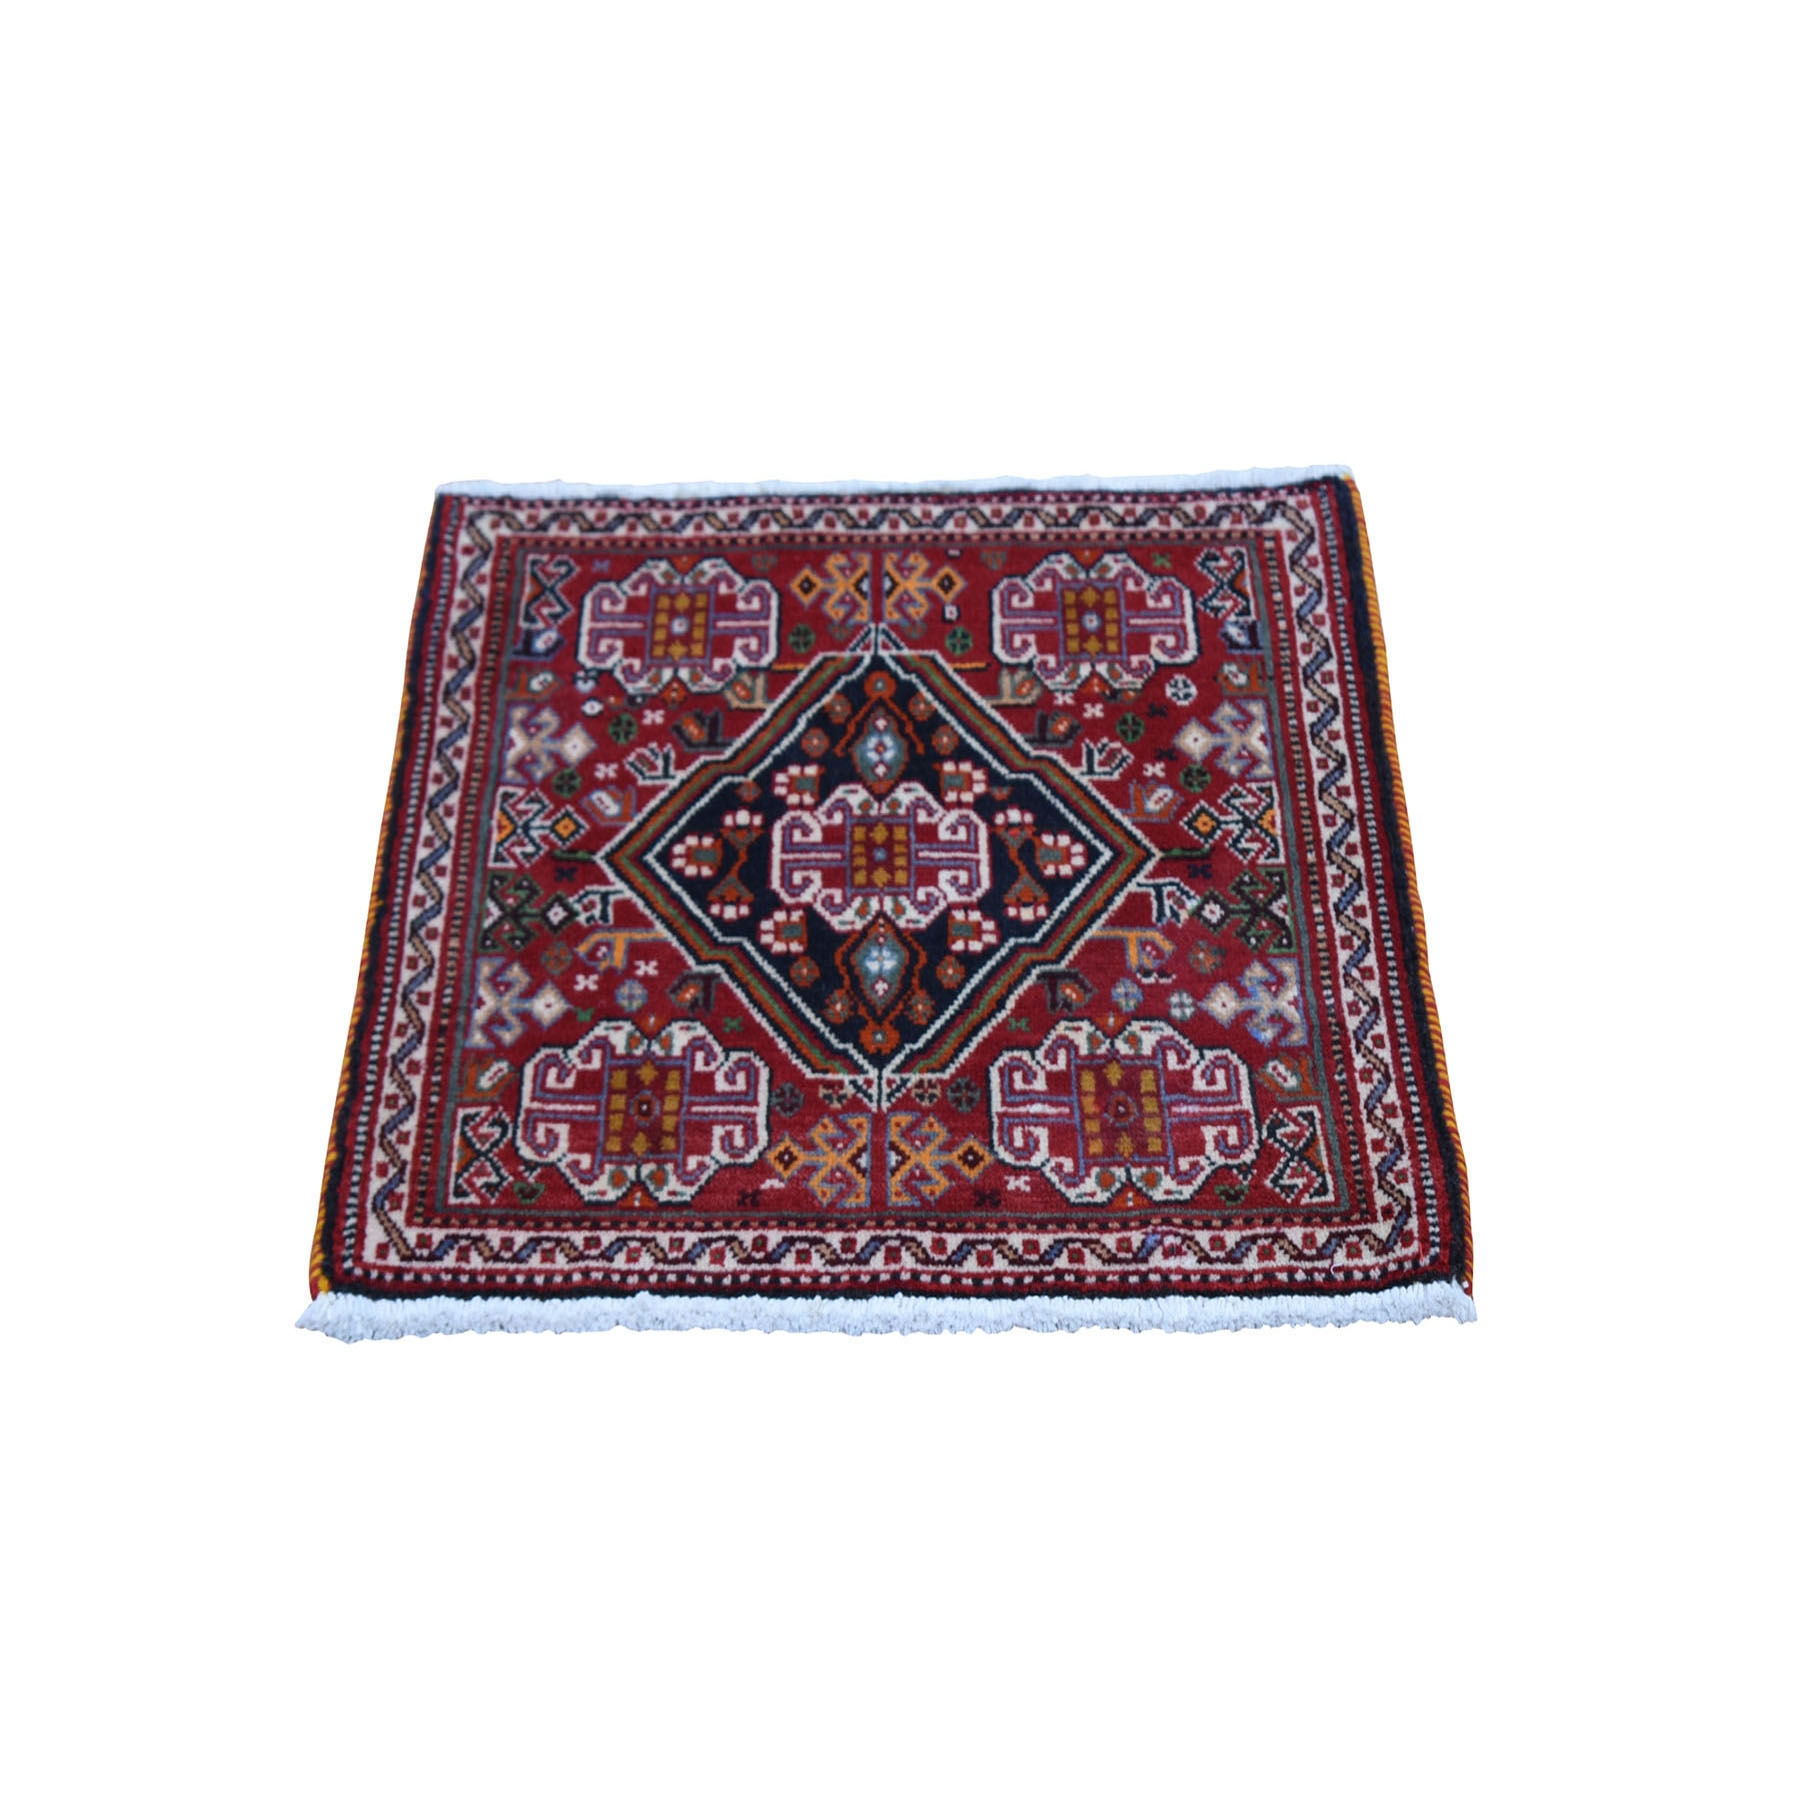 2'x2' Red Vintage Persian Qashqai Nomad Vivid Exc Condition Pure Wool Hand Knotted Little Bohemian Mat